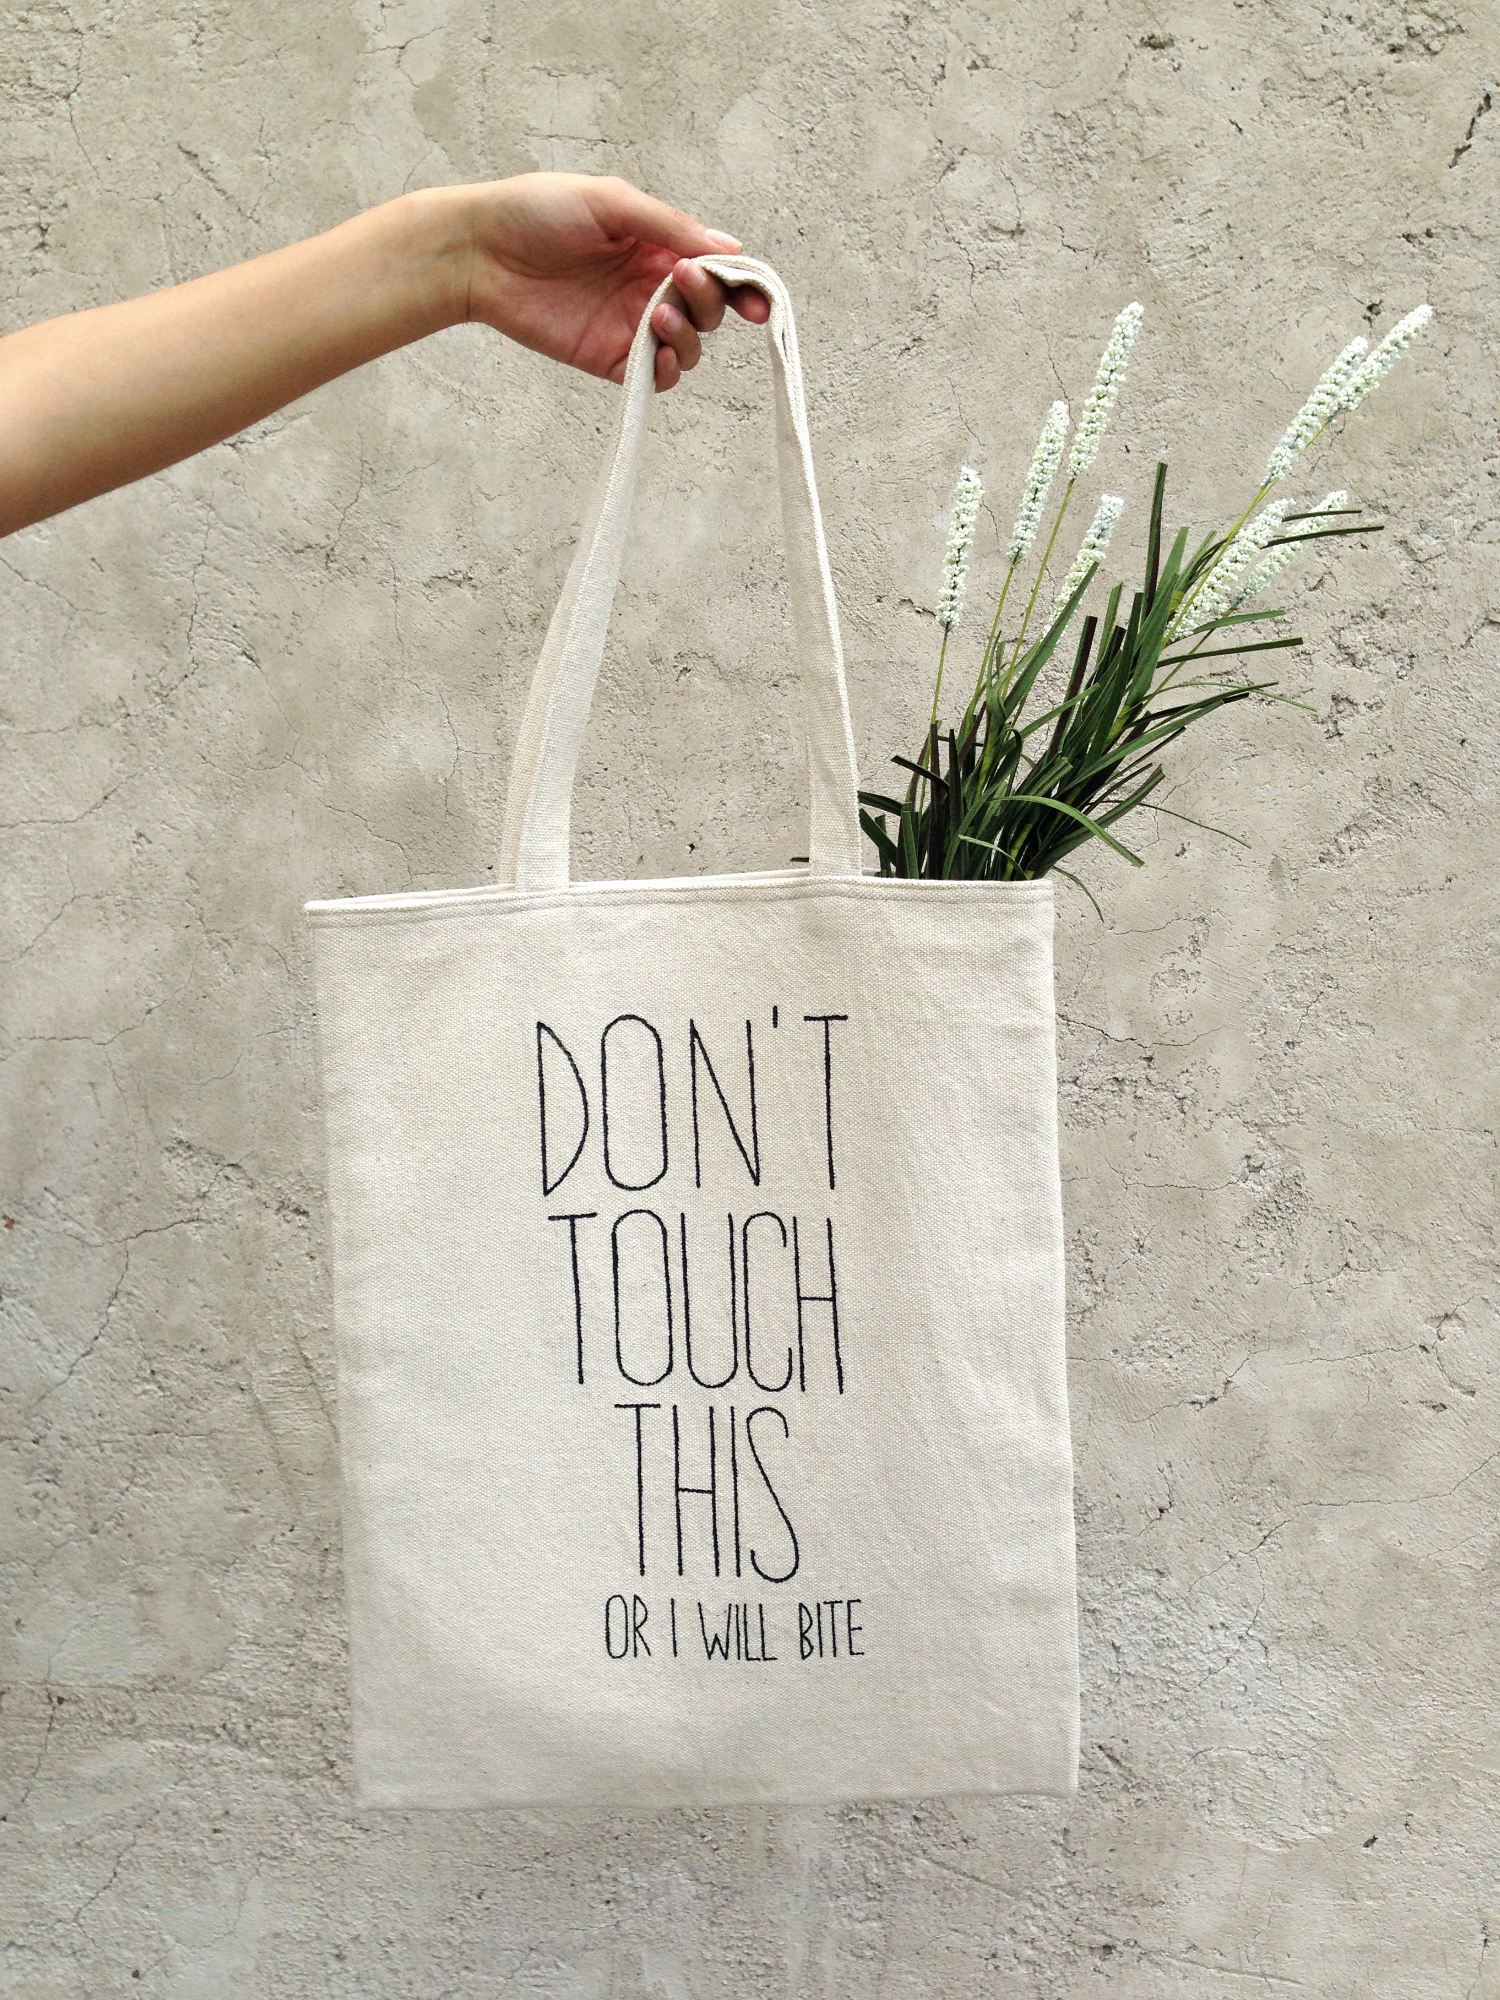 8aa03ca2b2 Natural cotton tote bag. Perfect market handbag with quote. Funny shoulder  bag with text. Trendy street fashion accessory